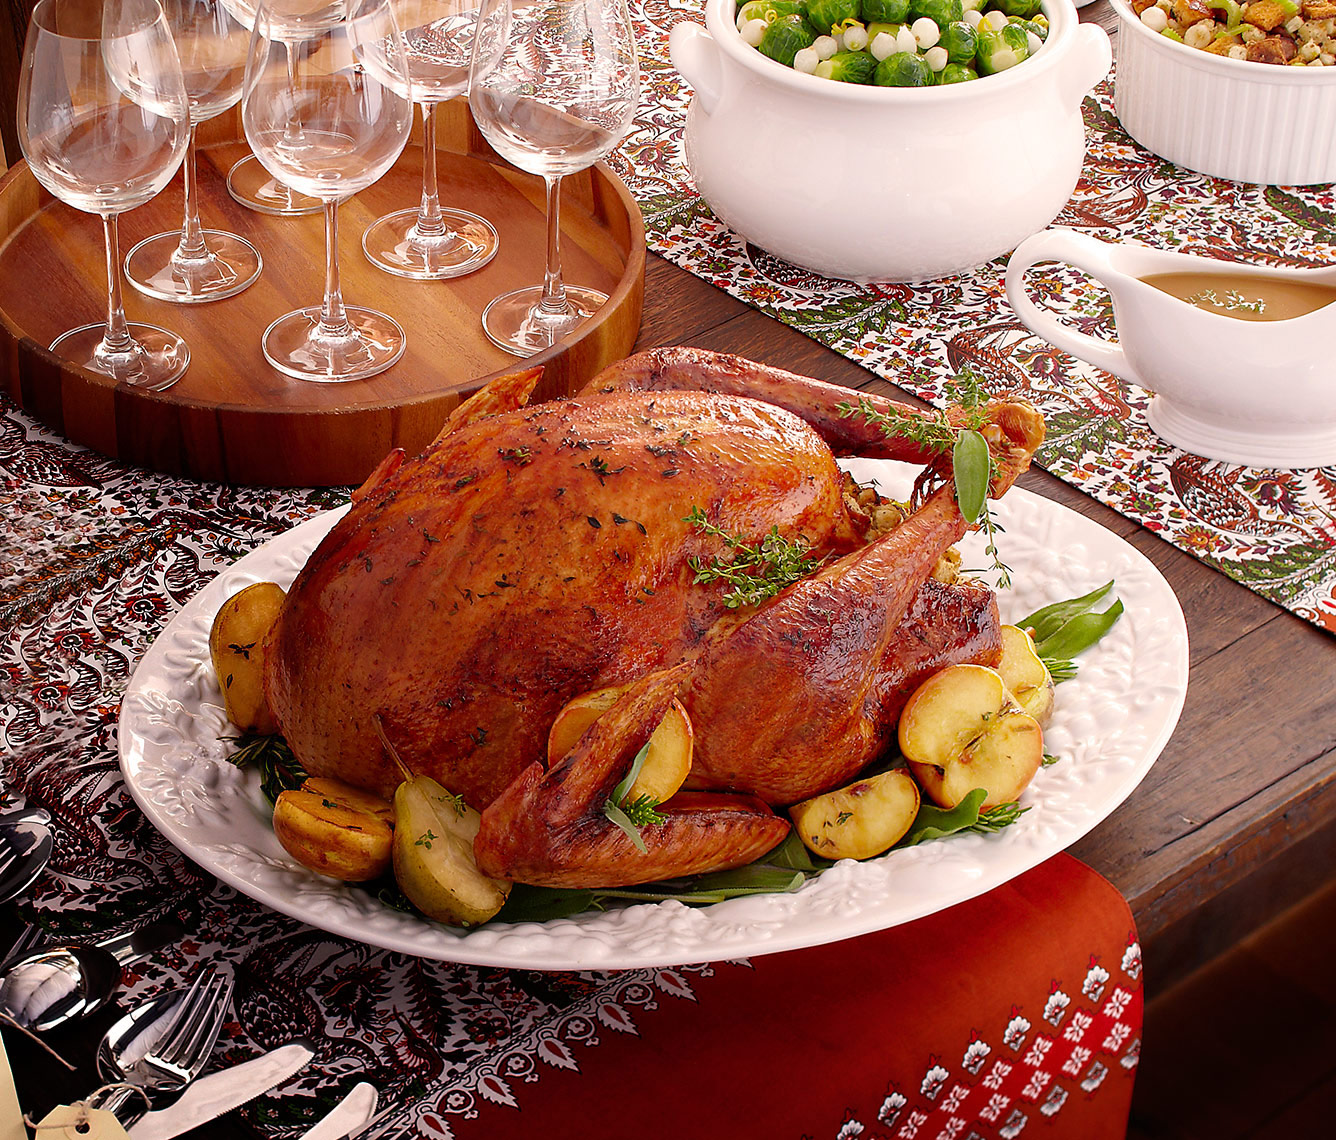 Turkey Dinner. Turkey, gravy, brussel sprouts and stuffing. Wine. Dinner Party.